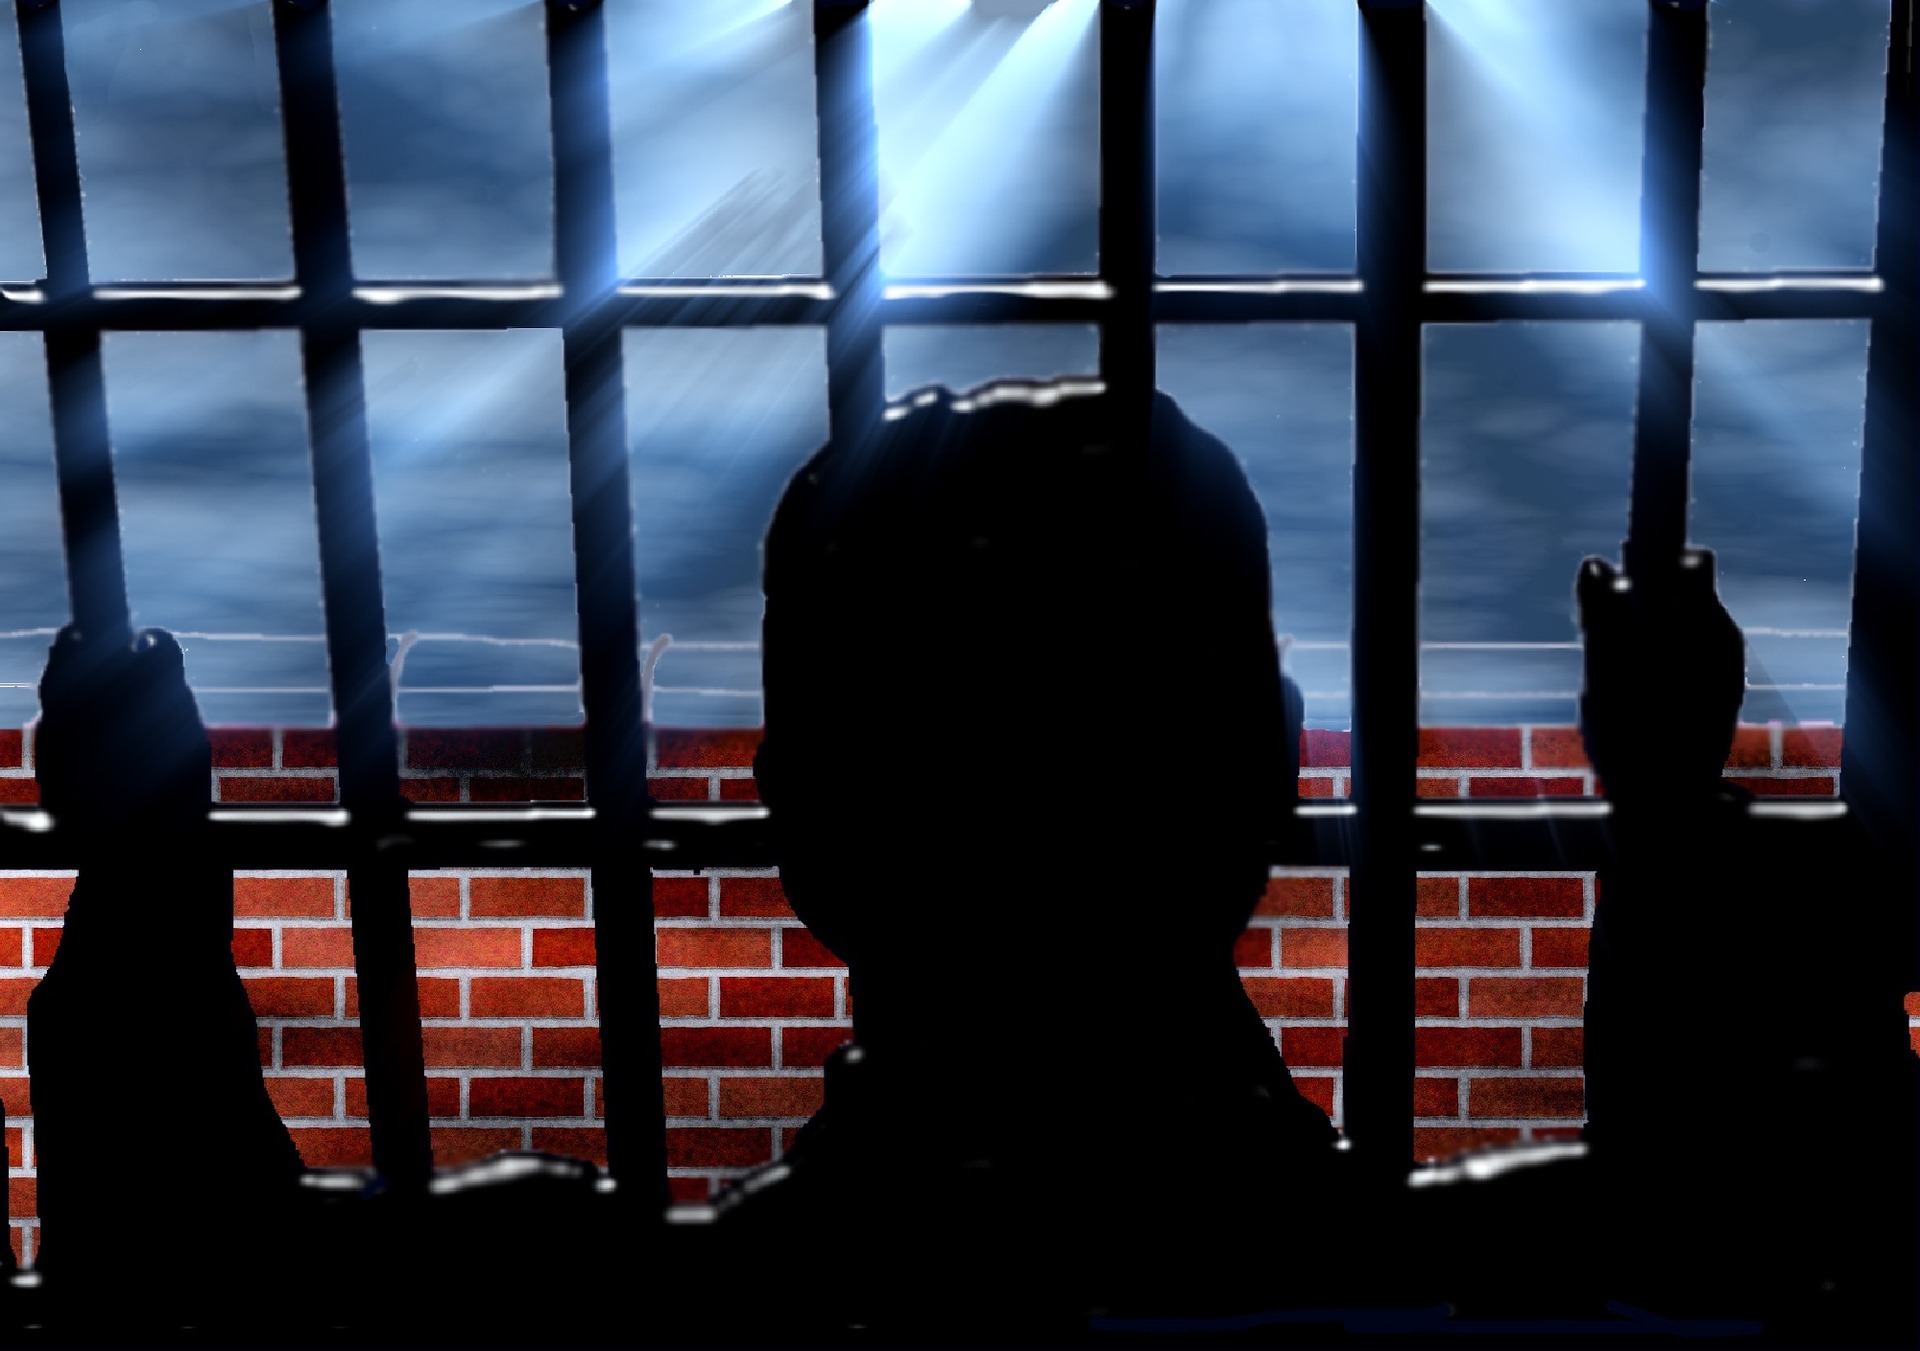 What you should know before your prison visit